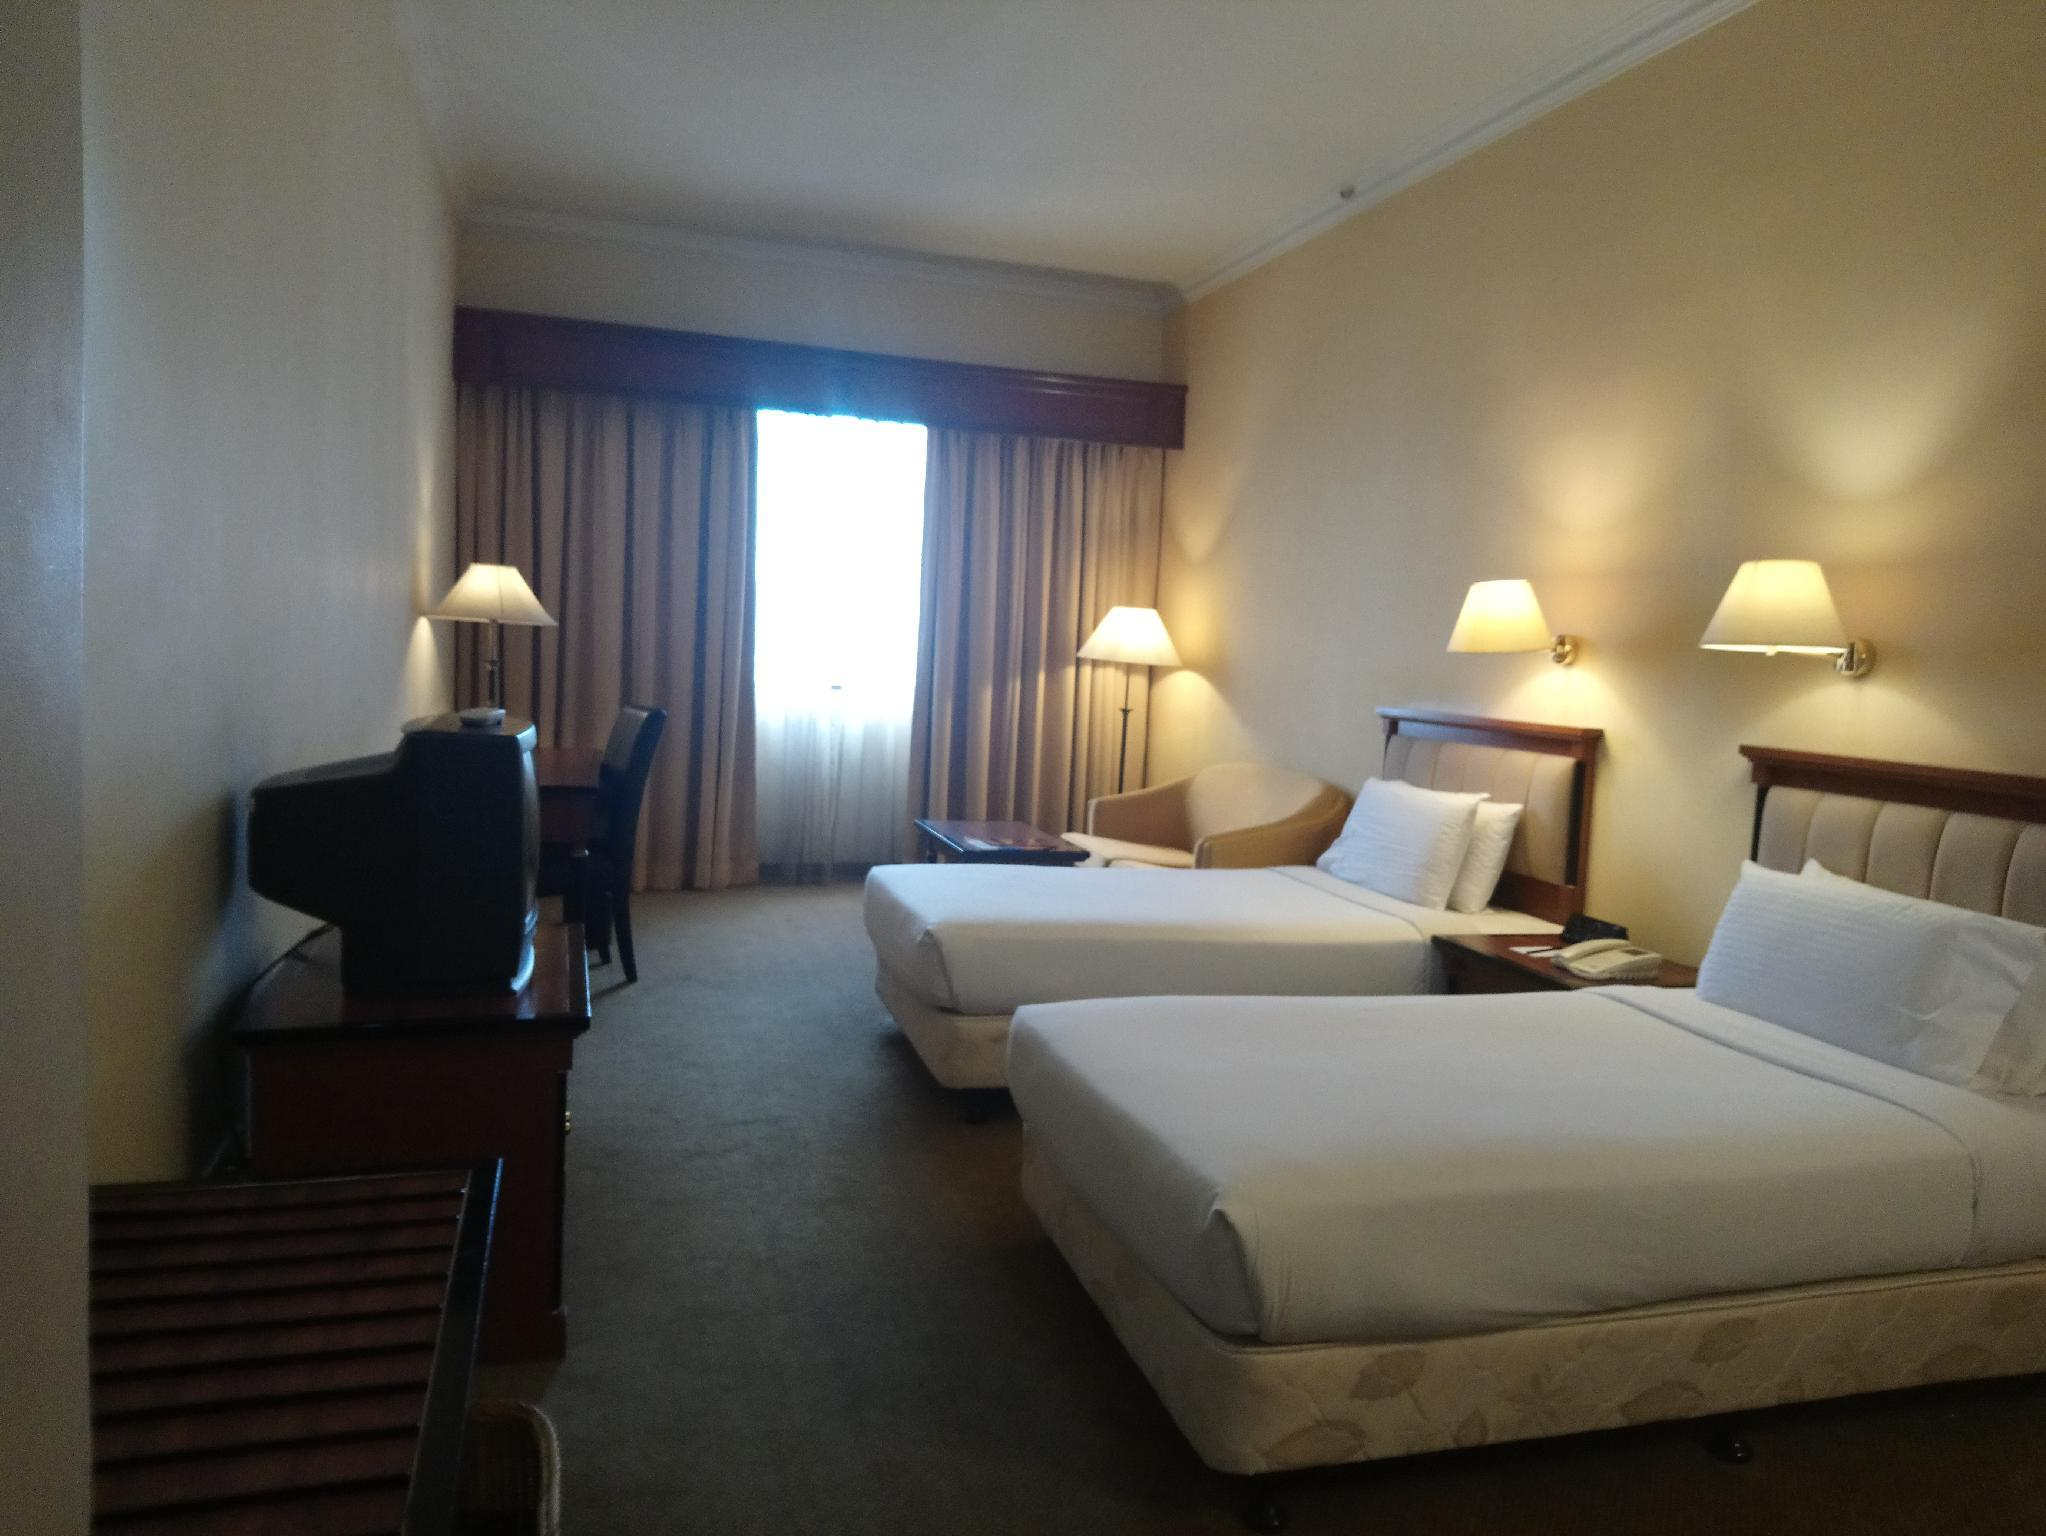 Executive Floor - Deluxe Room With Breakfast